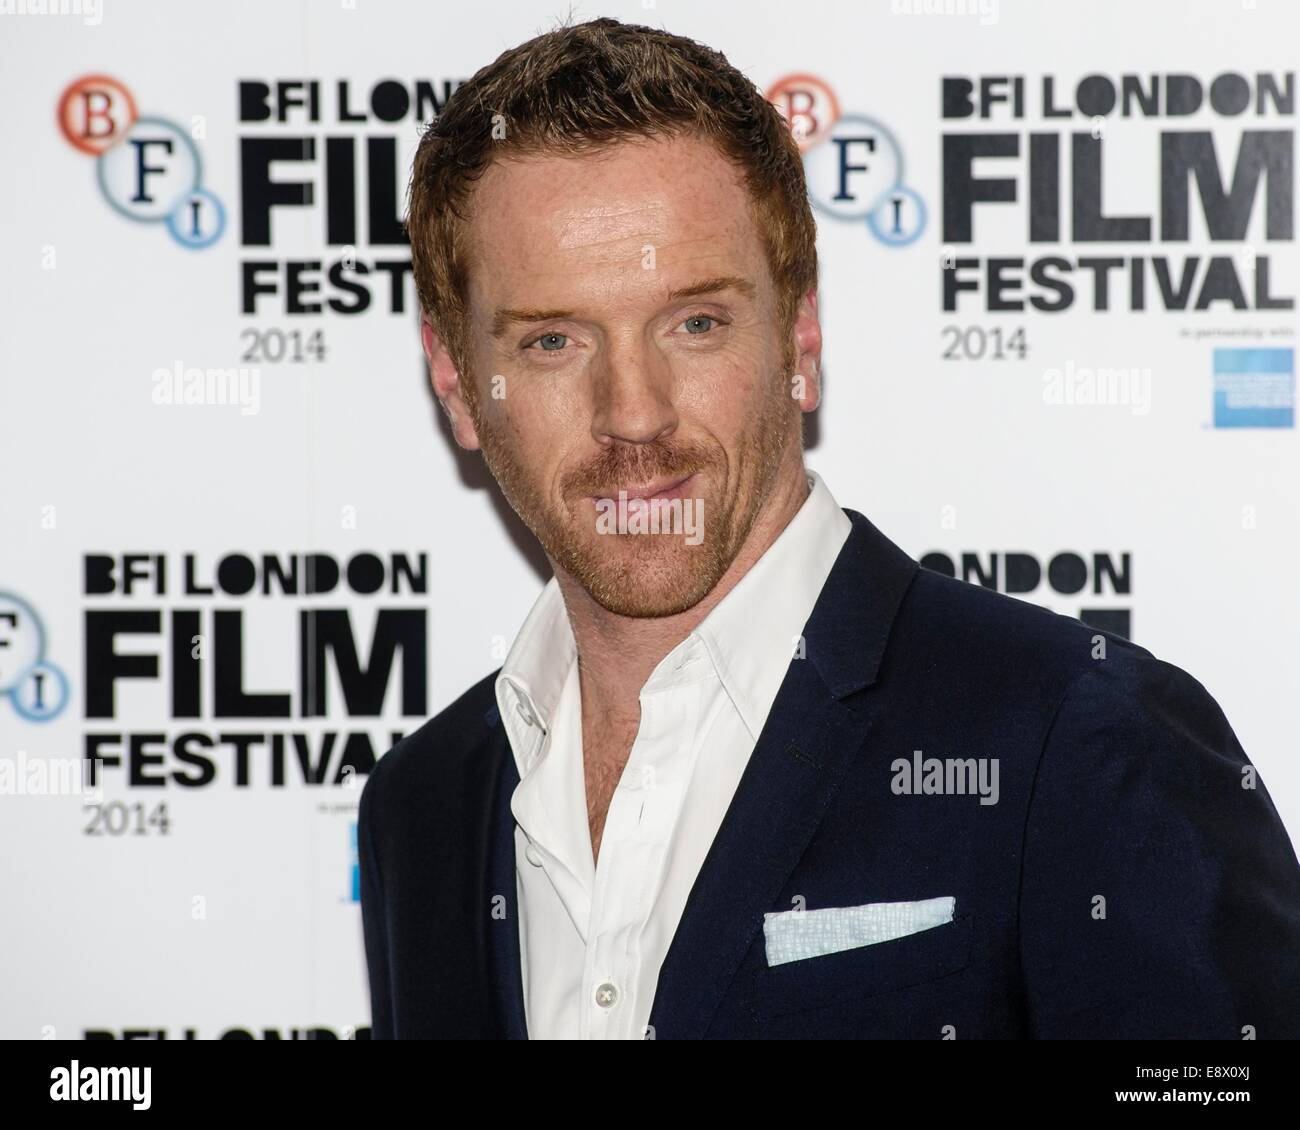 Actor Damian Lewis attends the SILENT STORM WORLD PREMIERE at The BFI London Film Festival on 14/10/2014 at The - Stock Image